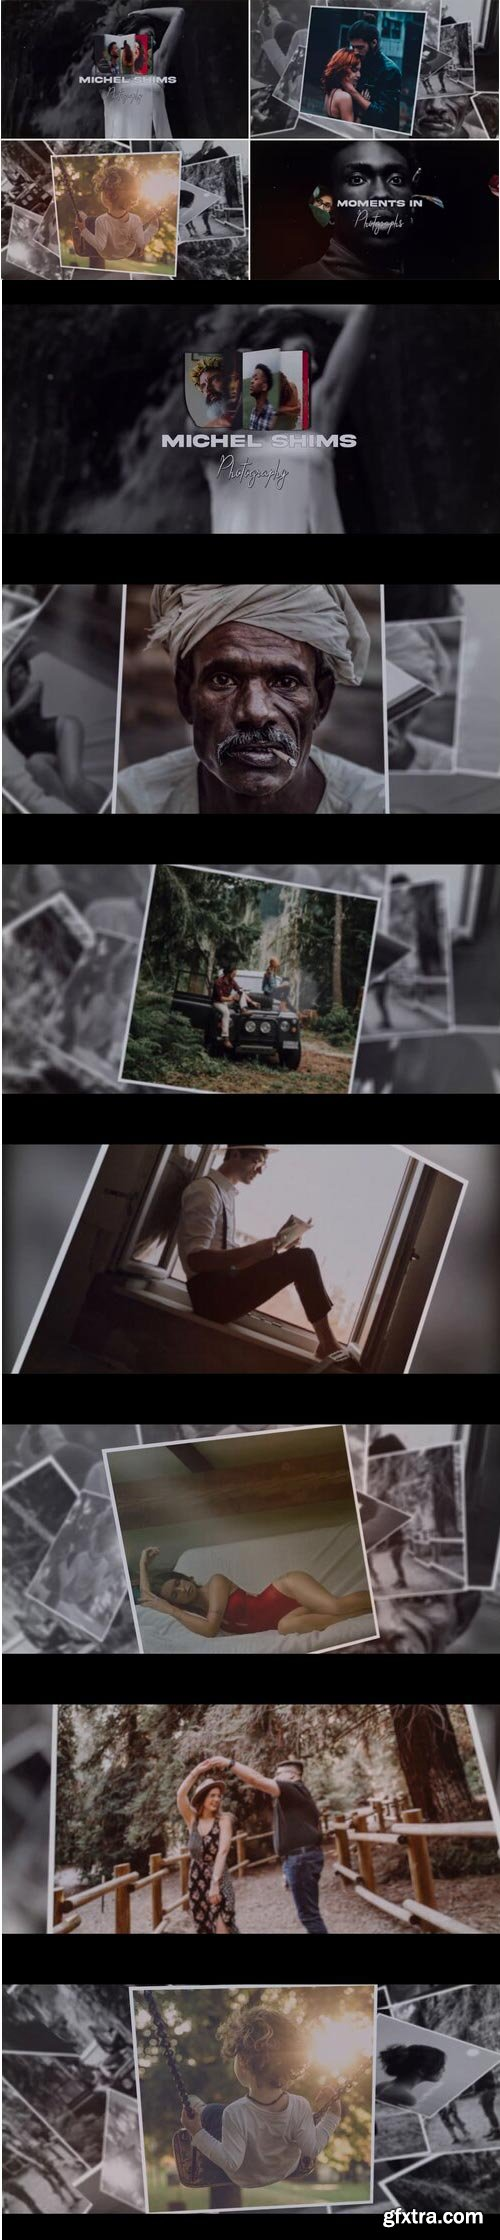 Videohive - Photographs in Moments - 33099308